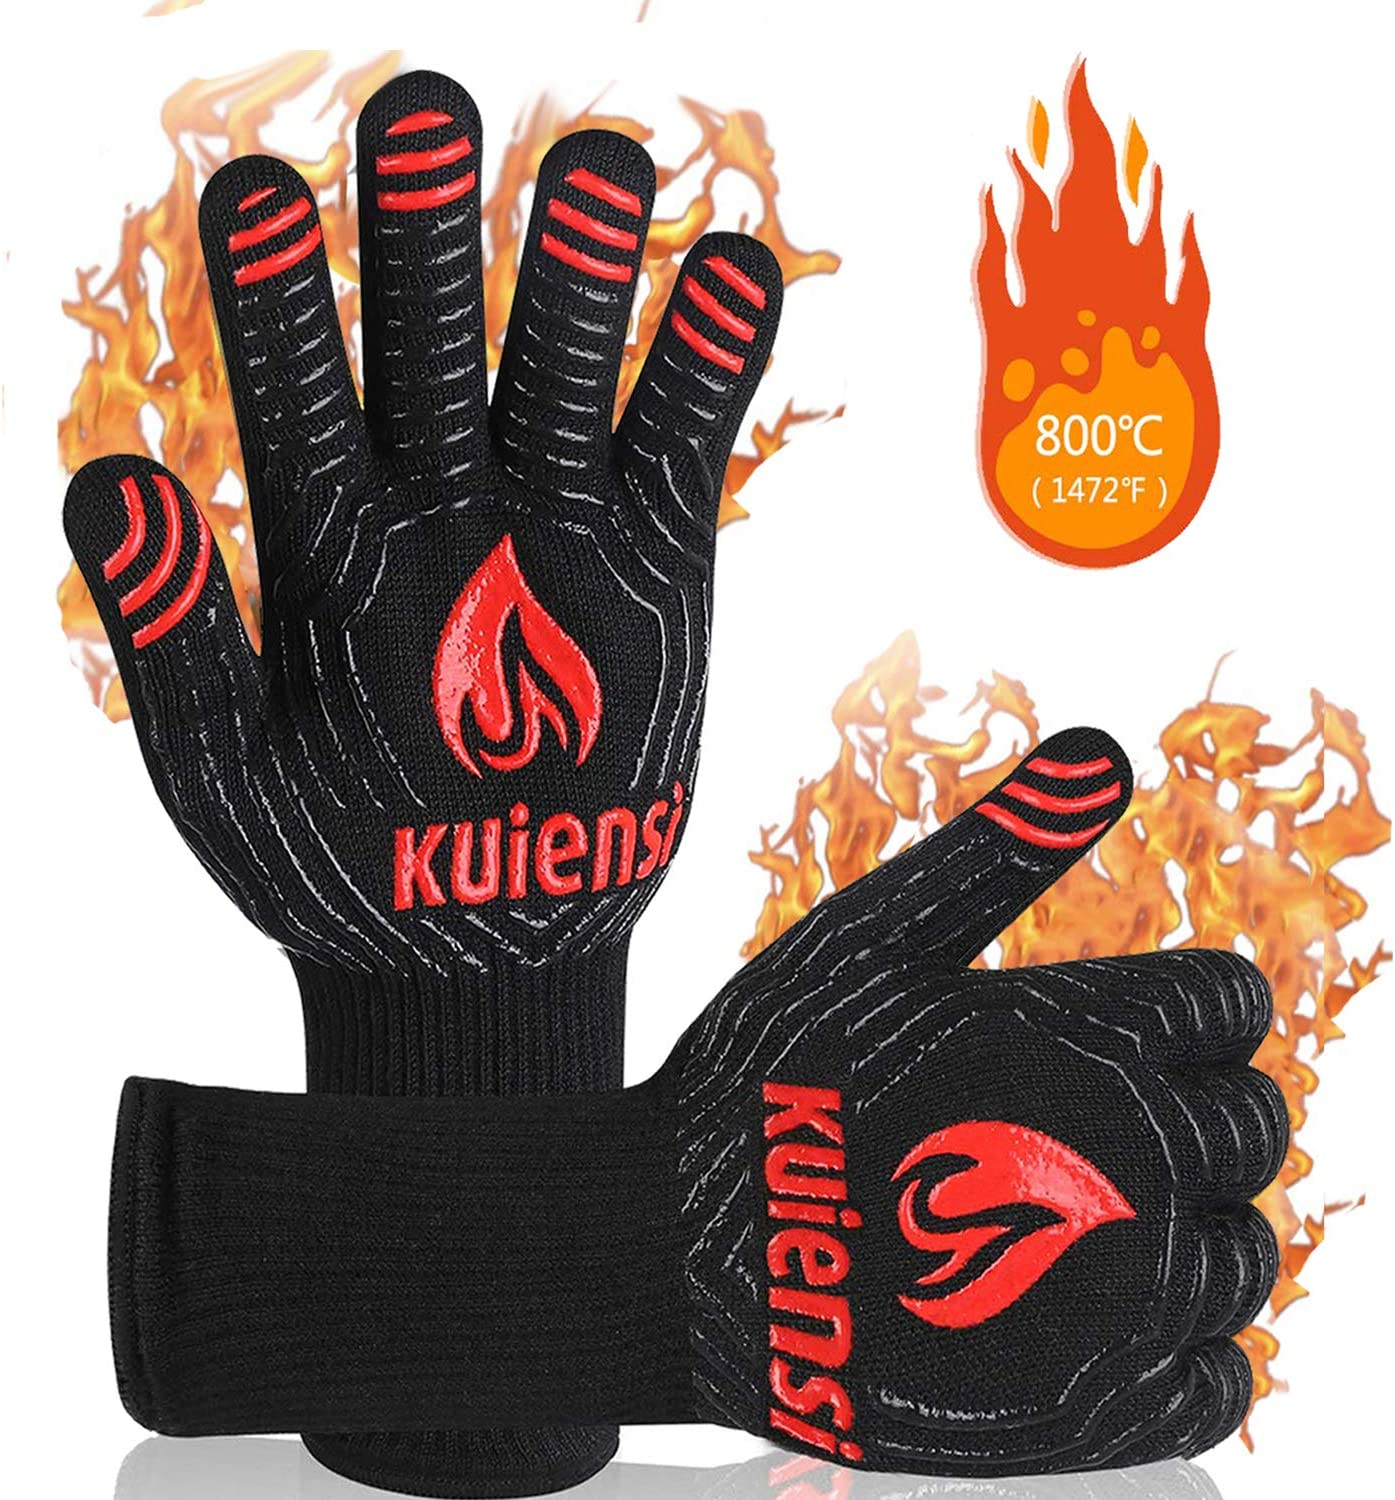 KUIENSI BBQ Gloves,1472°F Extreme Heat Resistant Grill Gloves,EN407 Certified,Oven Mitts,Combination of Cotton,Silicone Non-Slip Cooking Gloves,Designed for Baking Barbecue Fireplace (1 Pair)